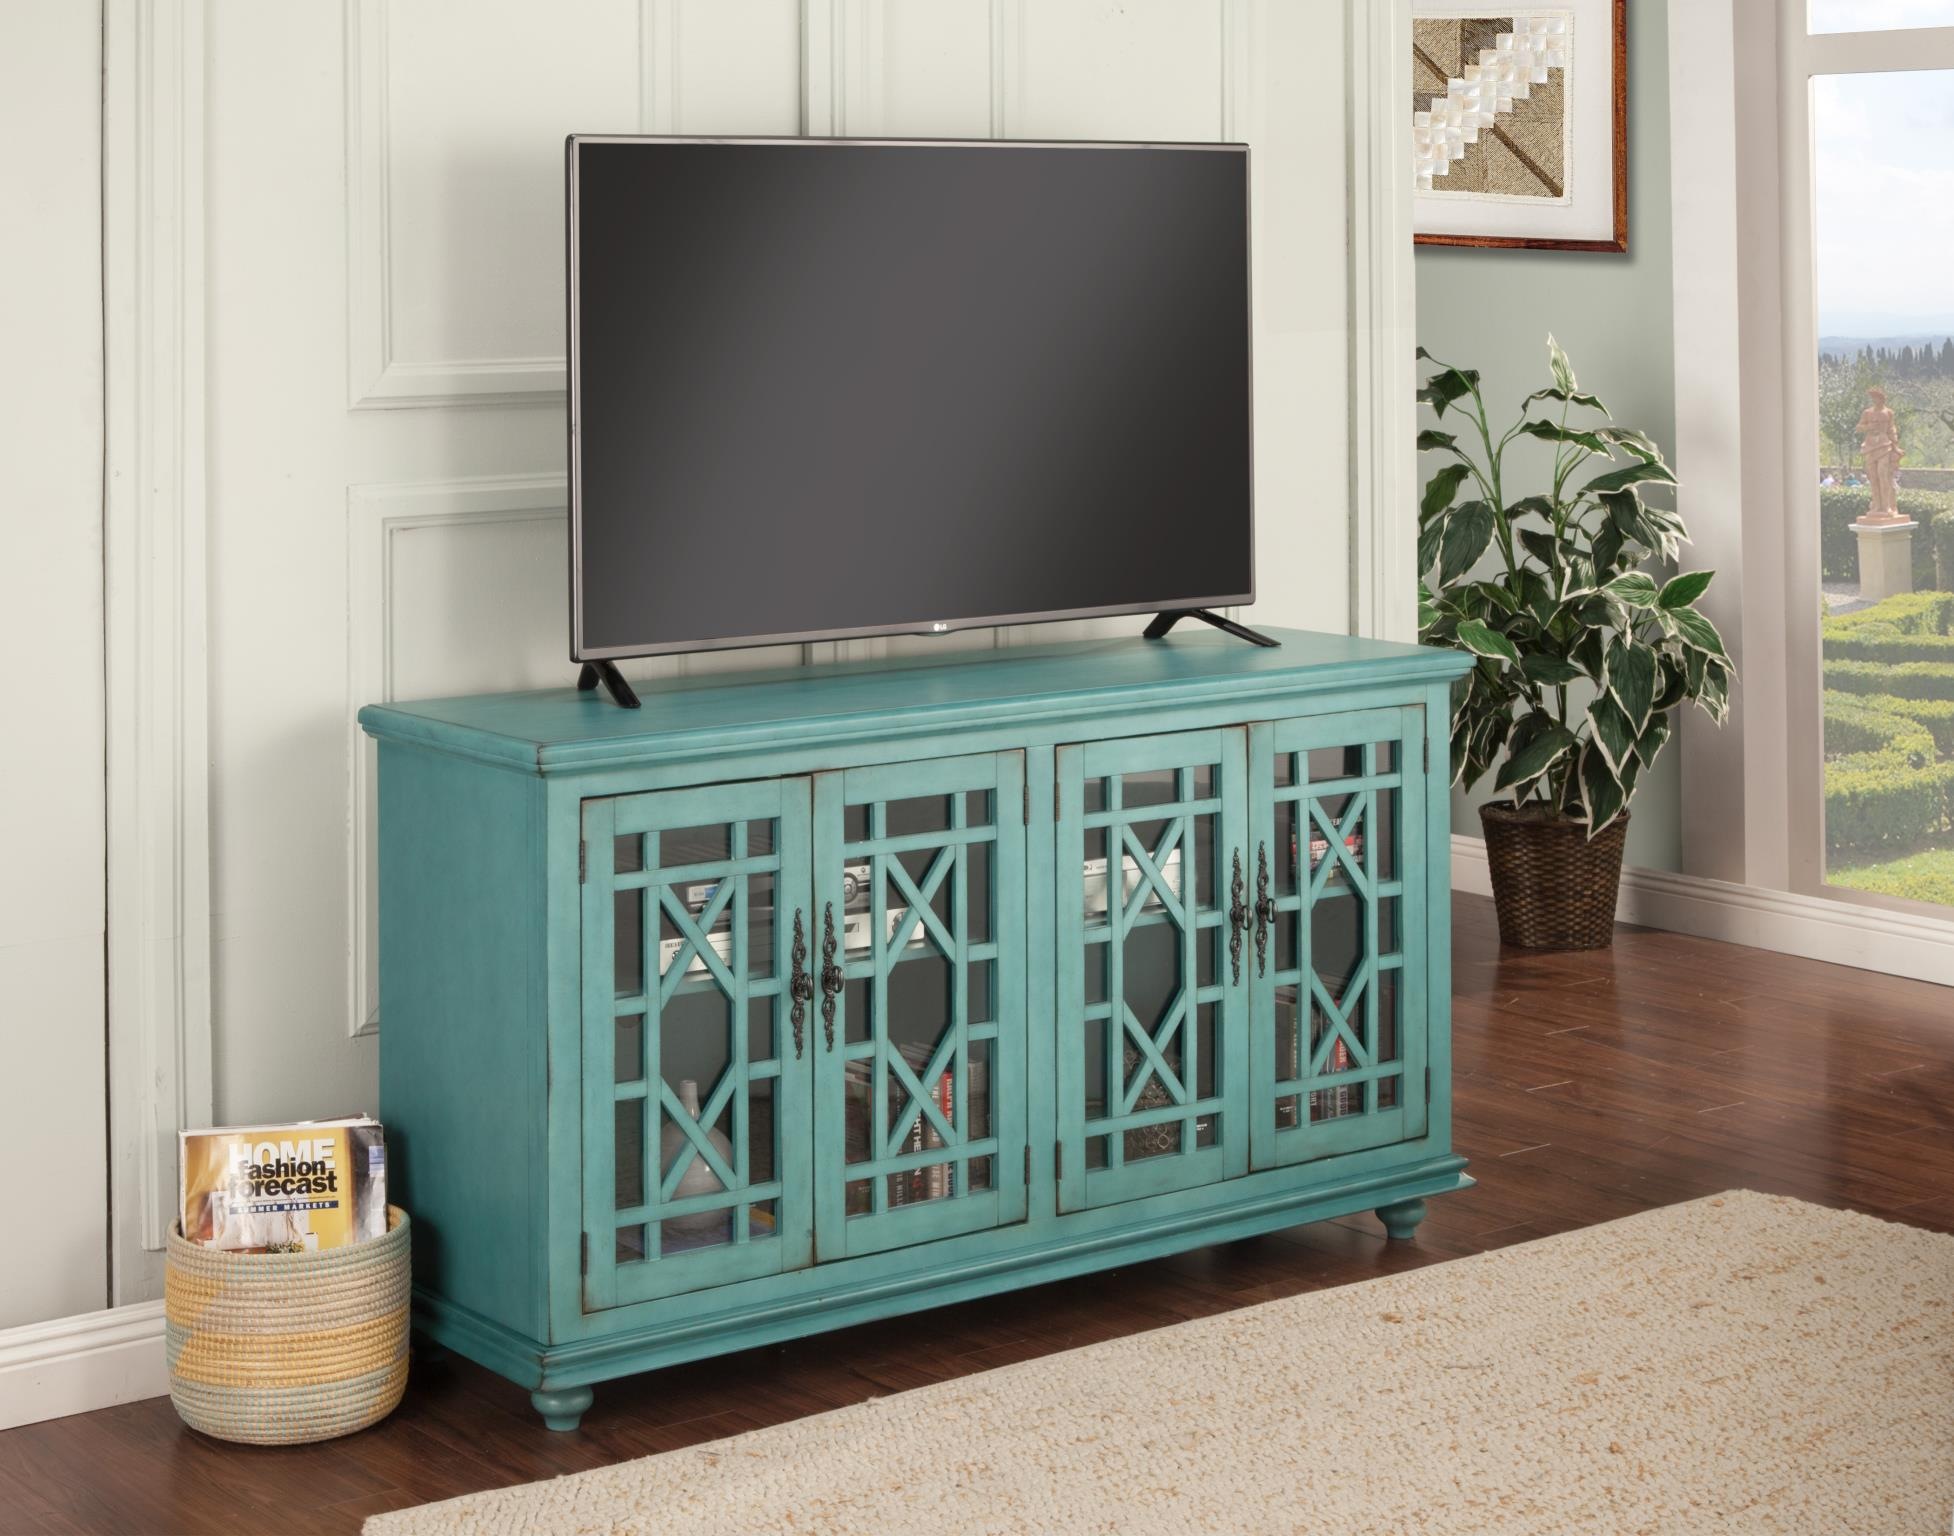 Elegant Console TV Stand / Entertainment Console Table